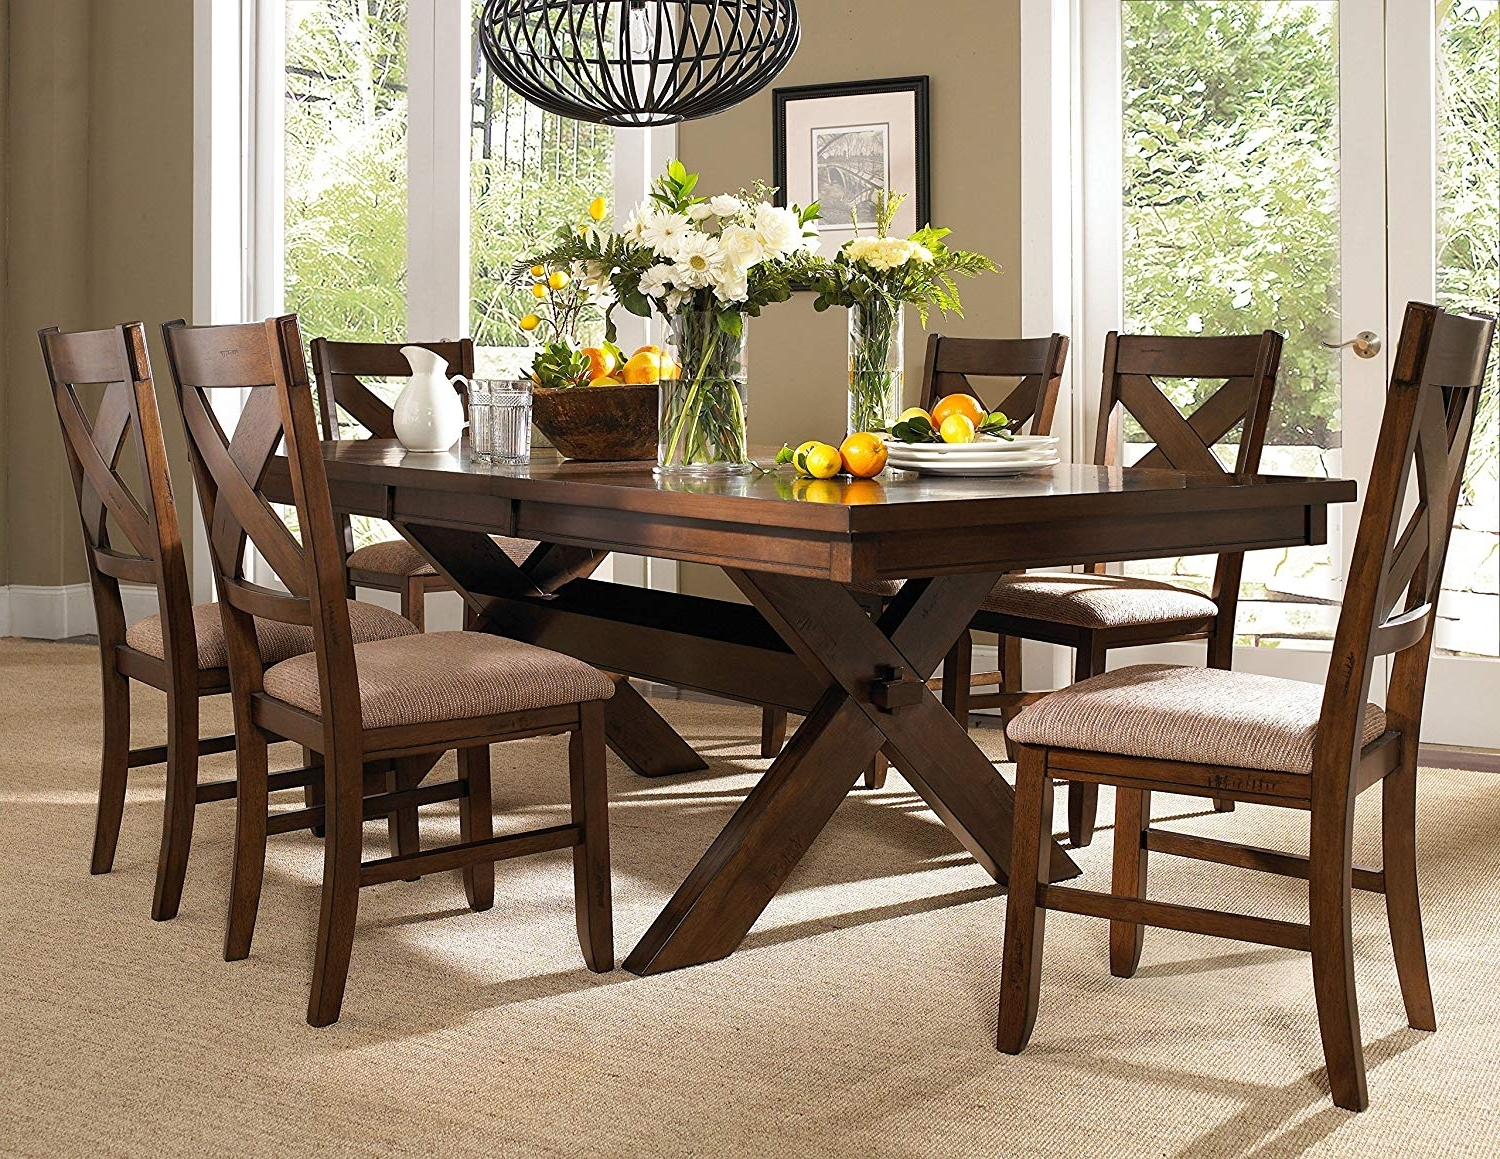 Dining Tables With 6 Chairs inside Famous Amazon - Powell 713-417M2 7 Piece Wooden Kraven Dining Set